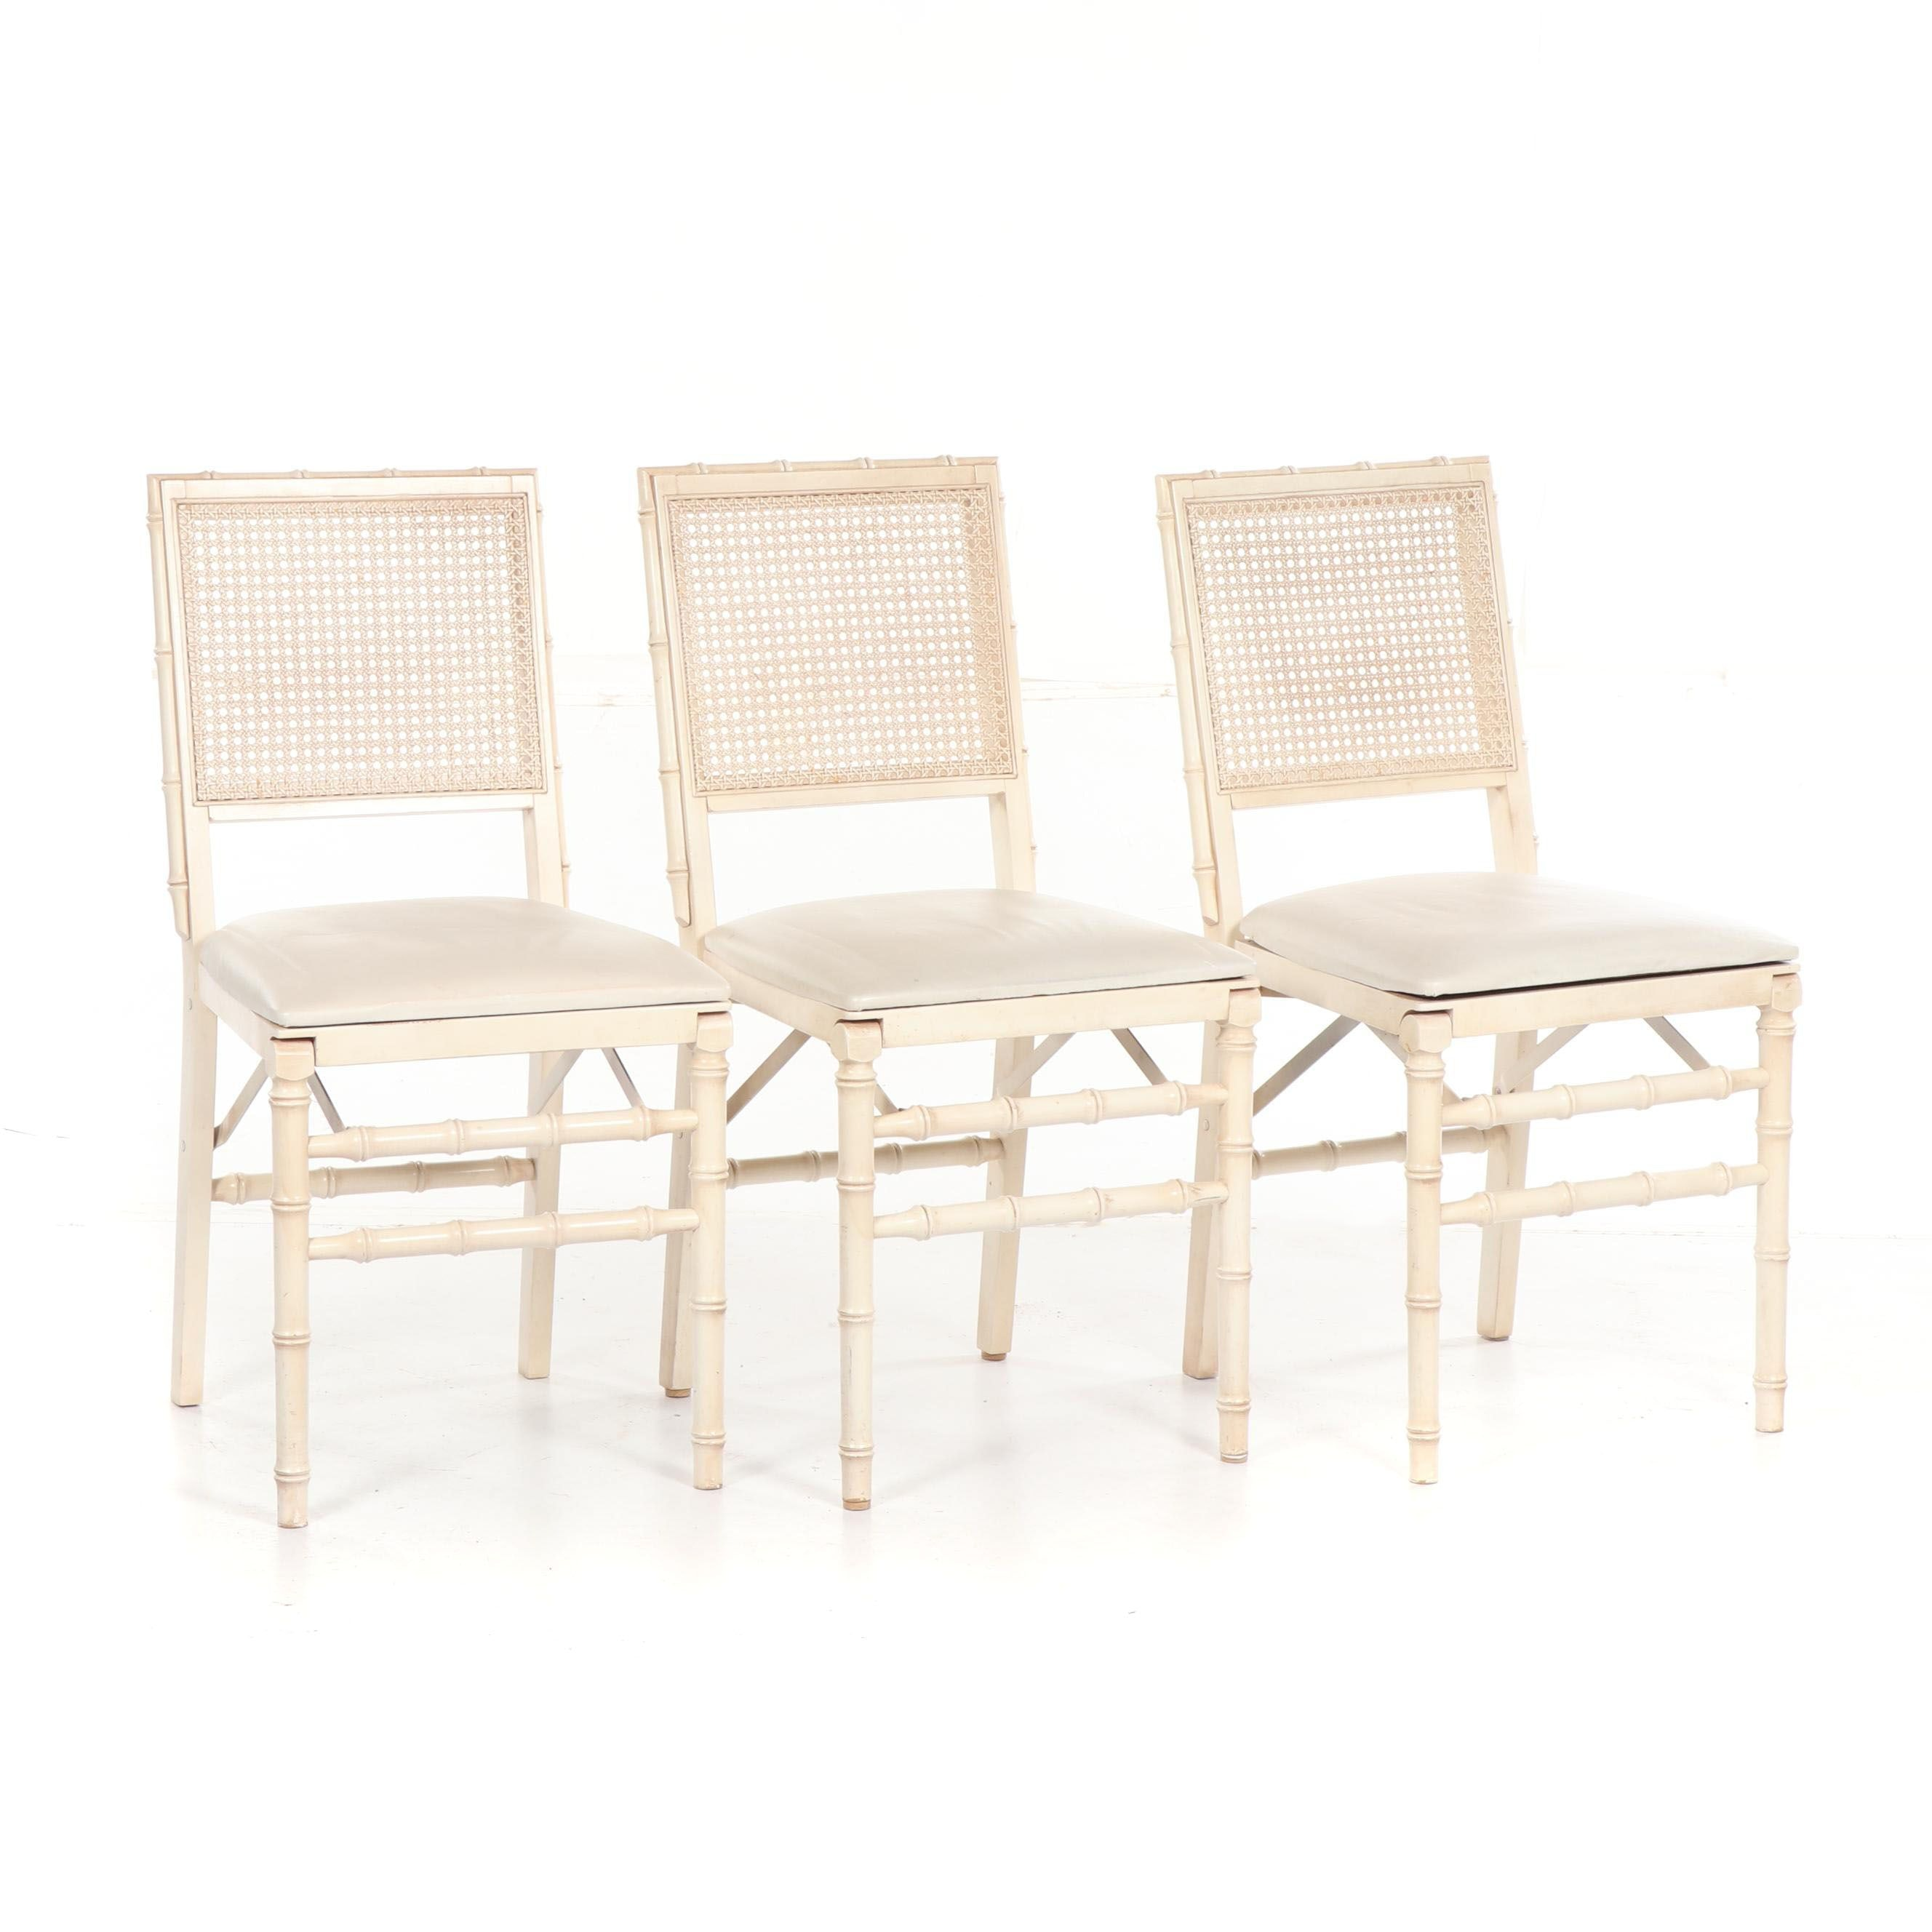 Painted Faux Bamboo Frame Cane Back Folding Chairs by Stakmore, 20th Century